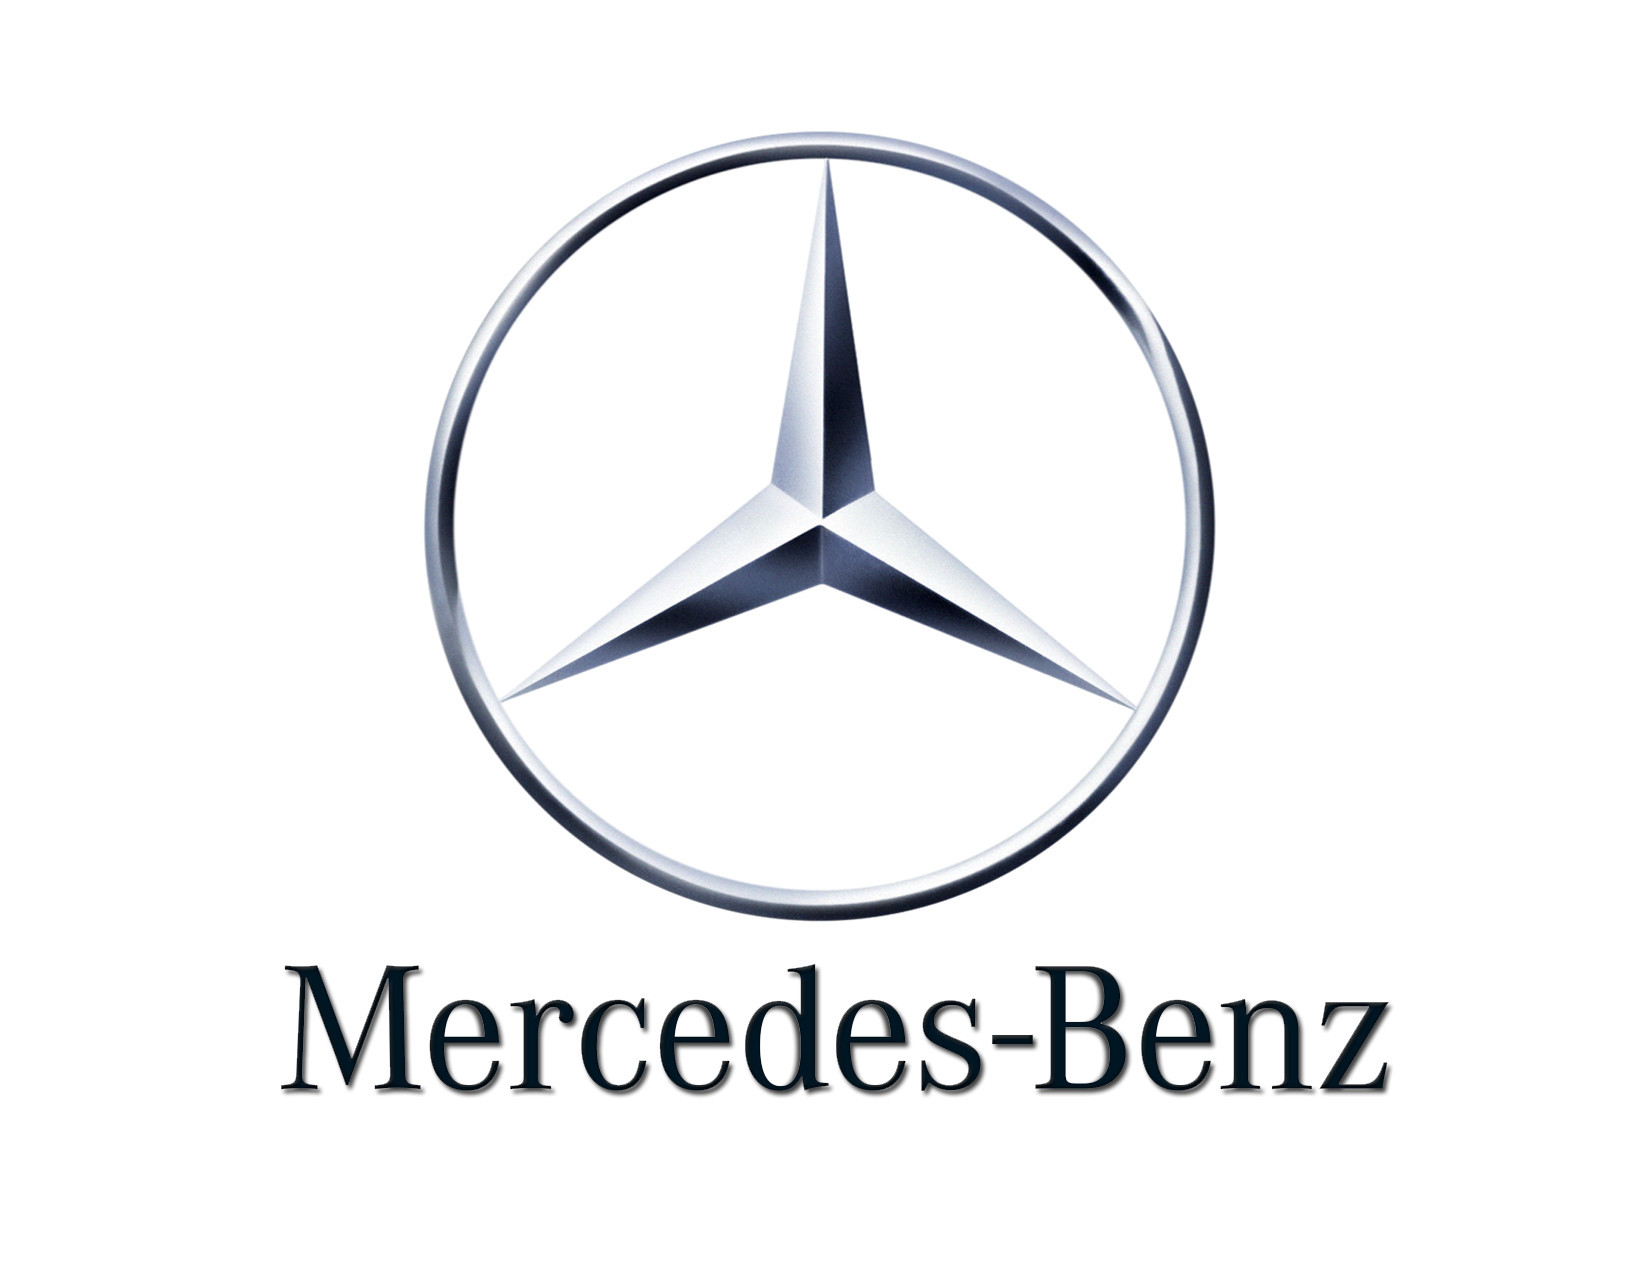 Mod sheet moreover Mercedes Auto Di Lusso Moderno 1327610 moreover Mercedes Benz B Class Review 2015 also Salif Qui Maime Me Suive as well 13909391000. on mercedes benz logo